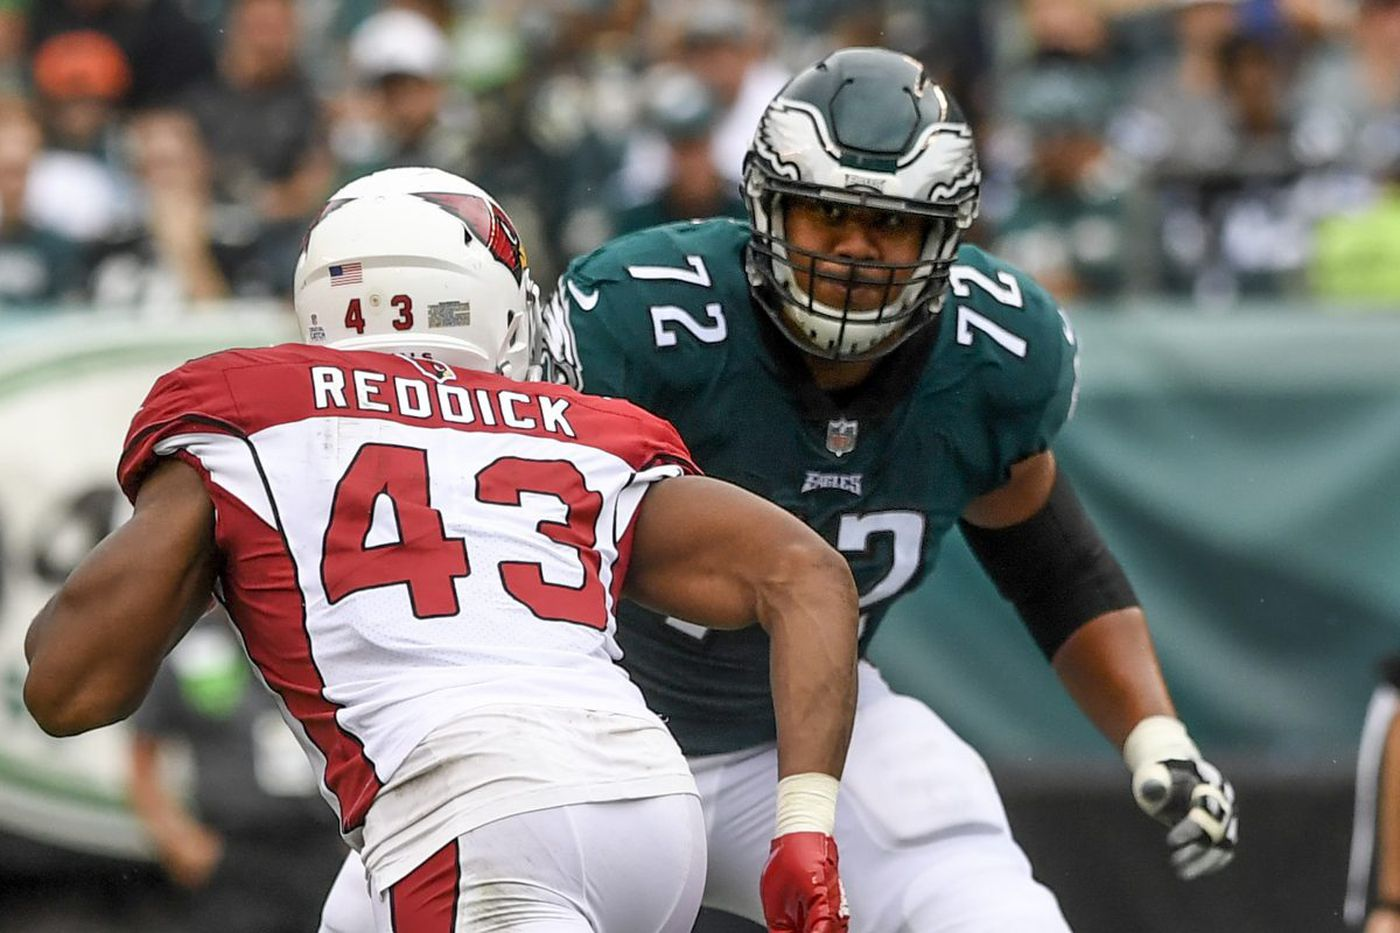 Spotlight on Eagles tackle Halapoulivaati Vaitai | Early Birds